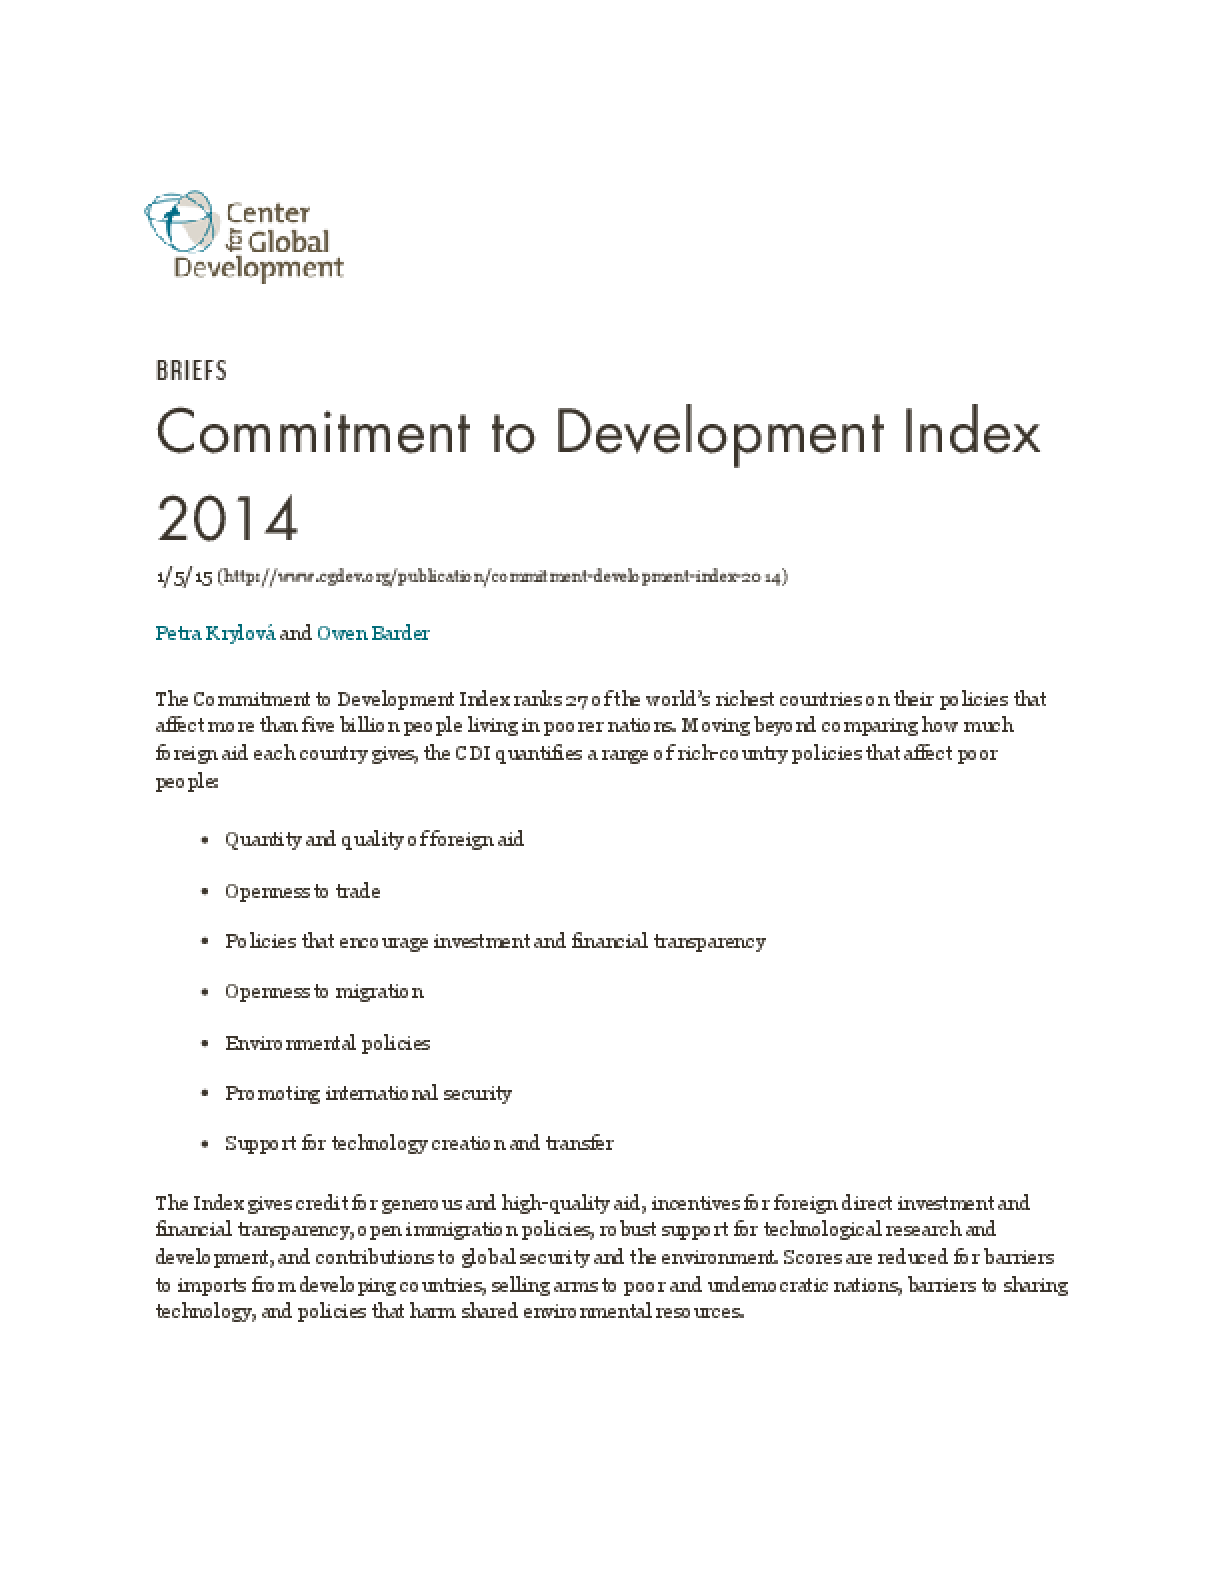 Commitment to Development Index 2014